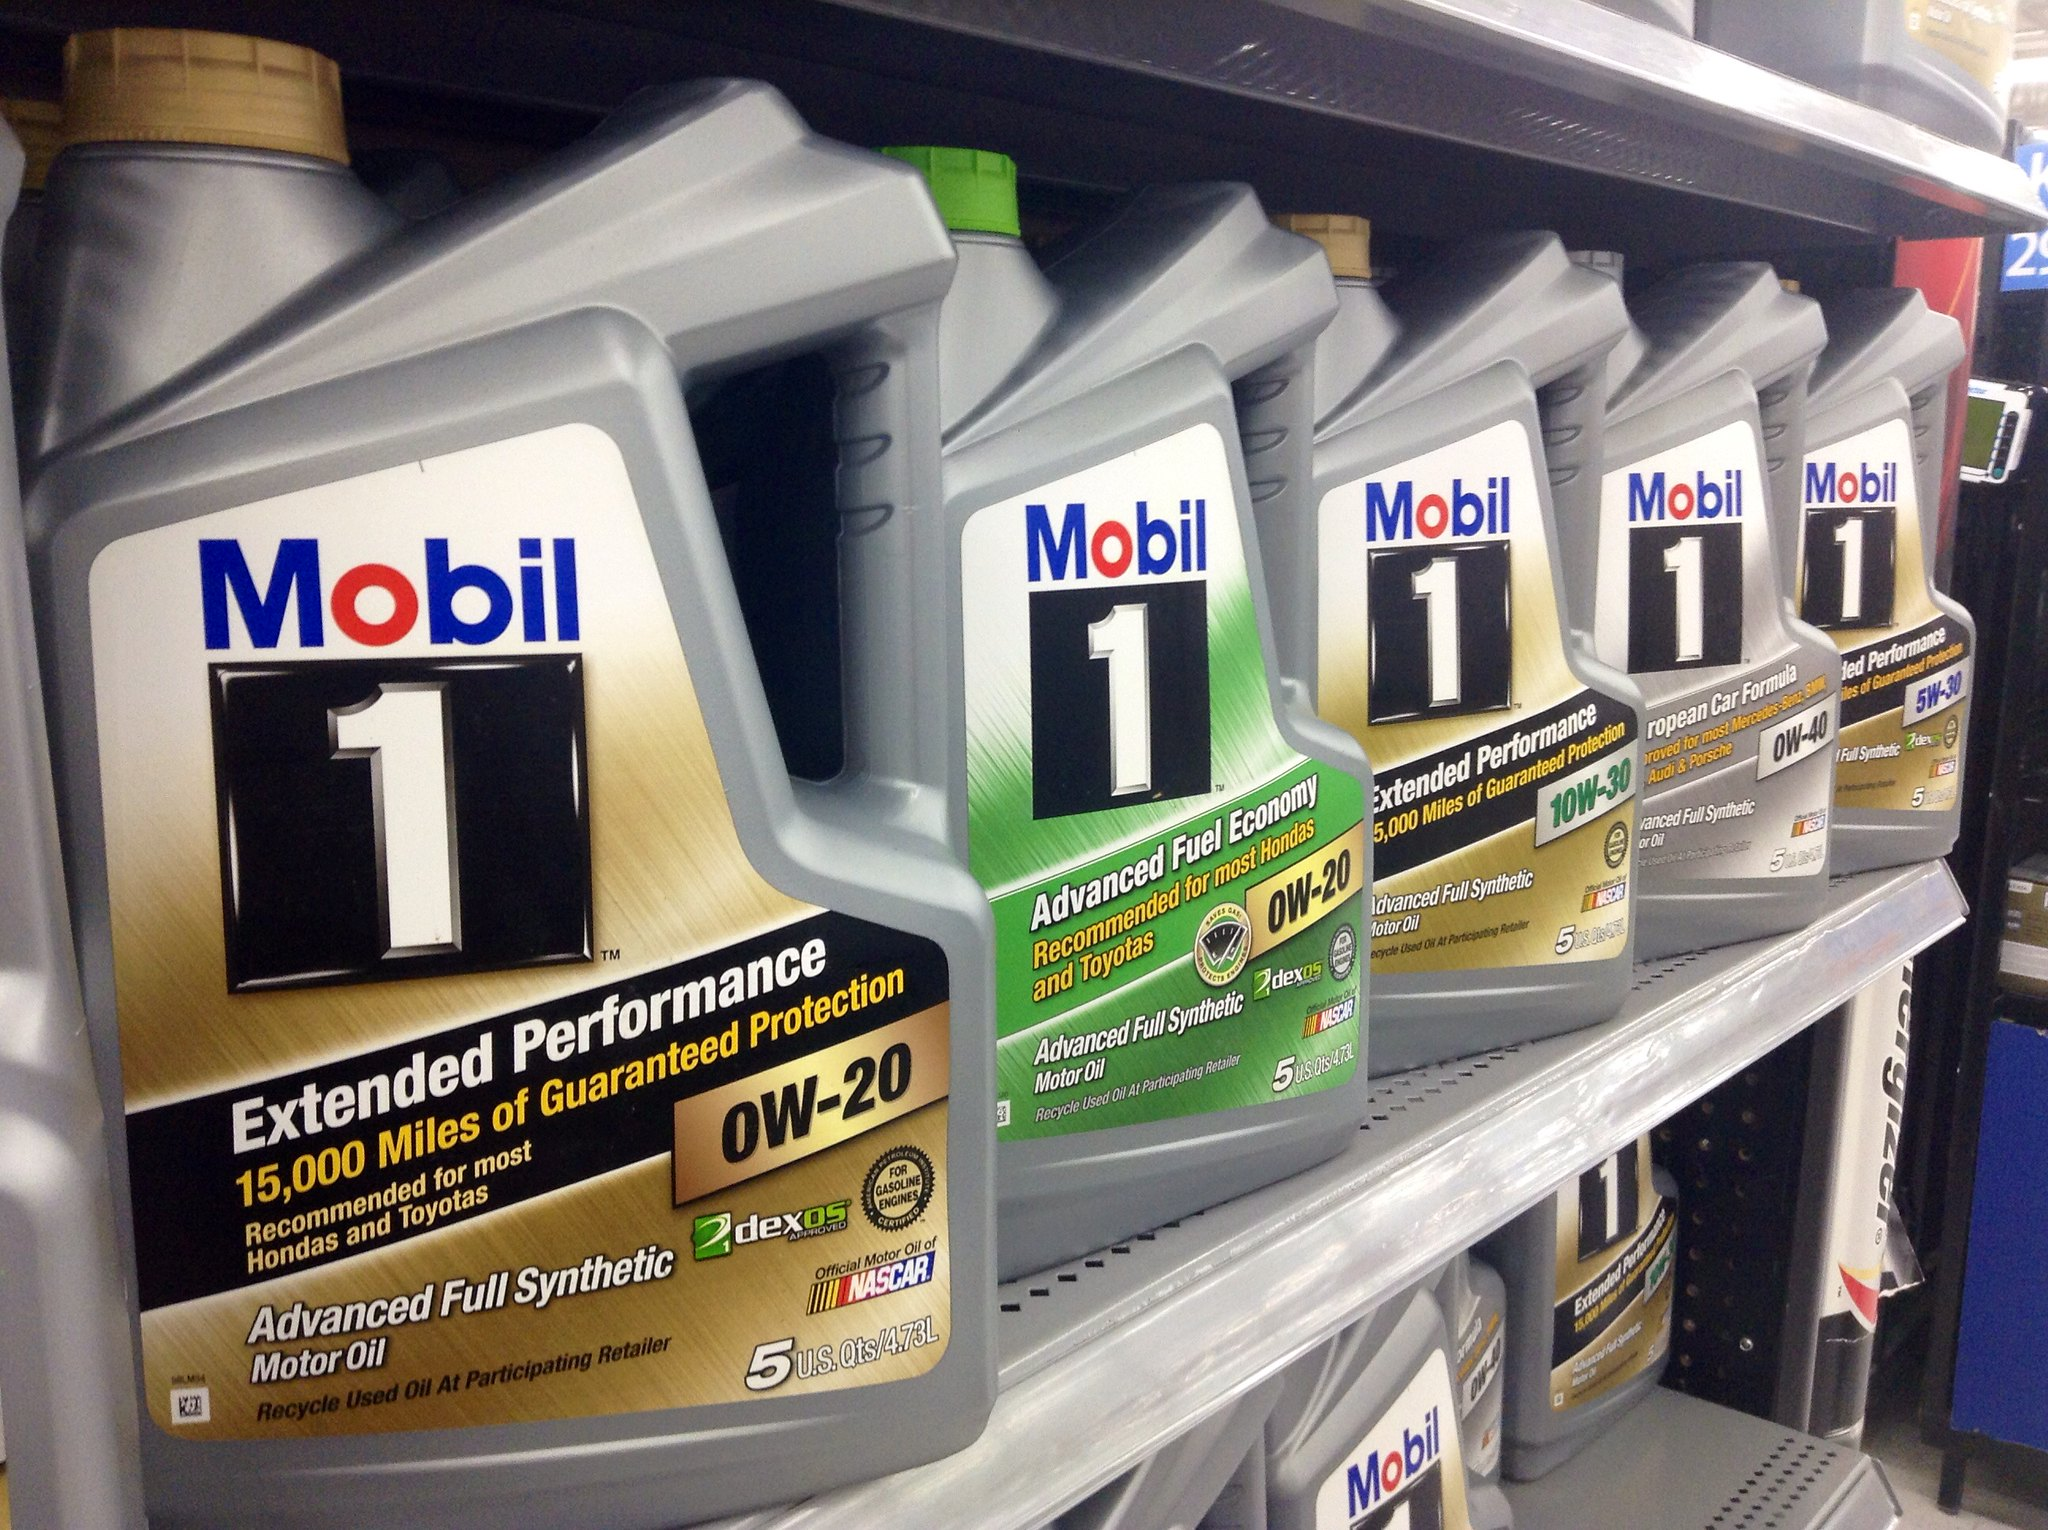 Mobil 1 engine oil bottles on the shelf